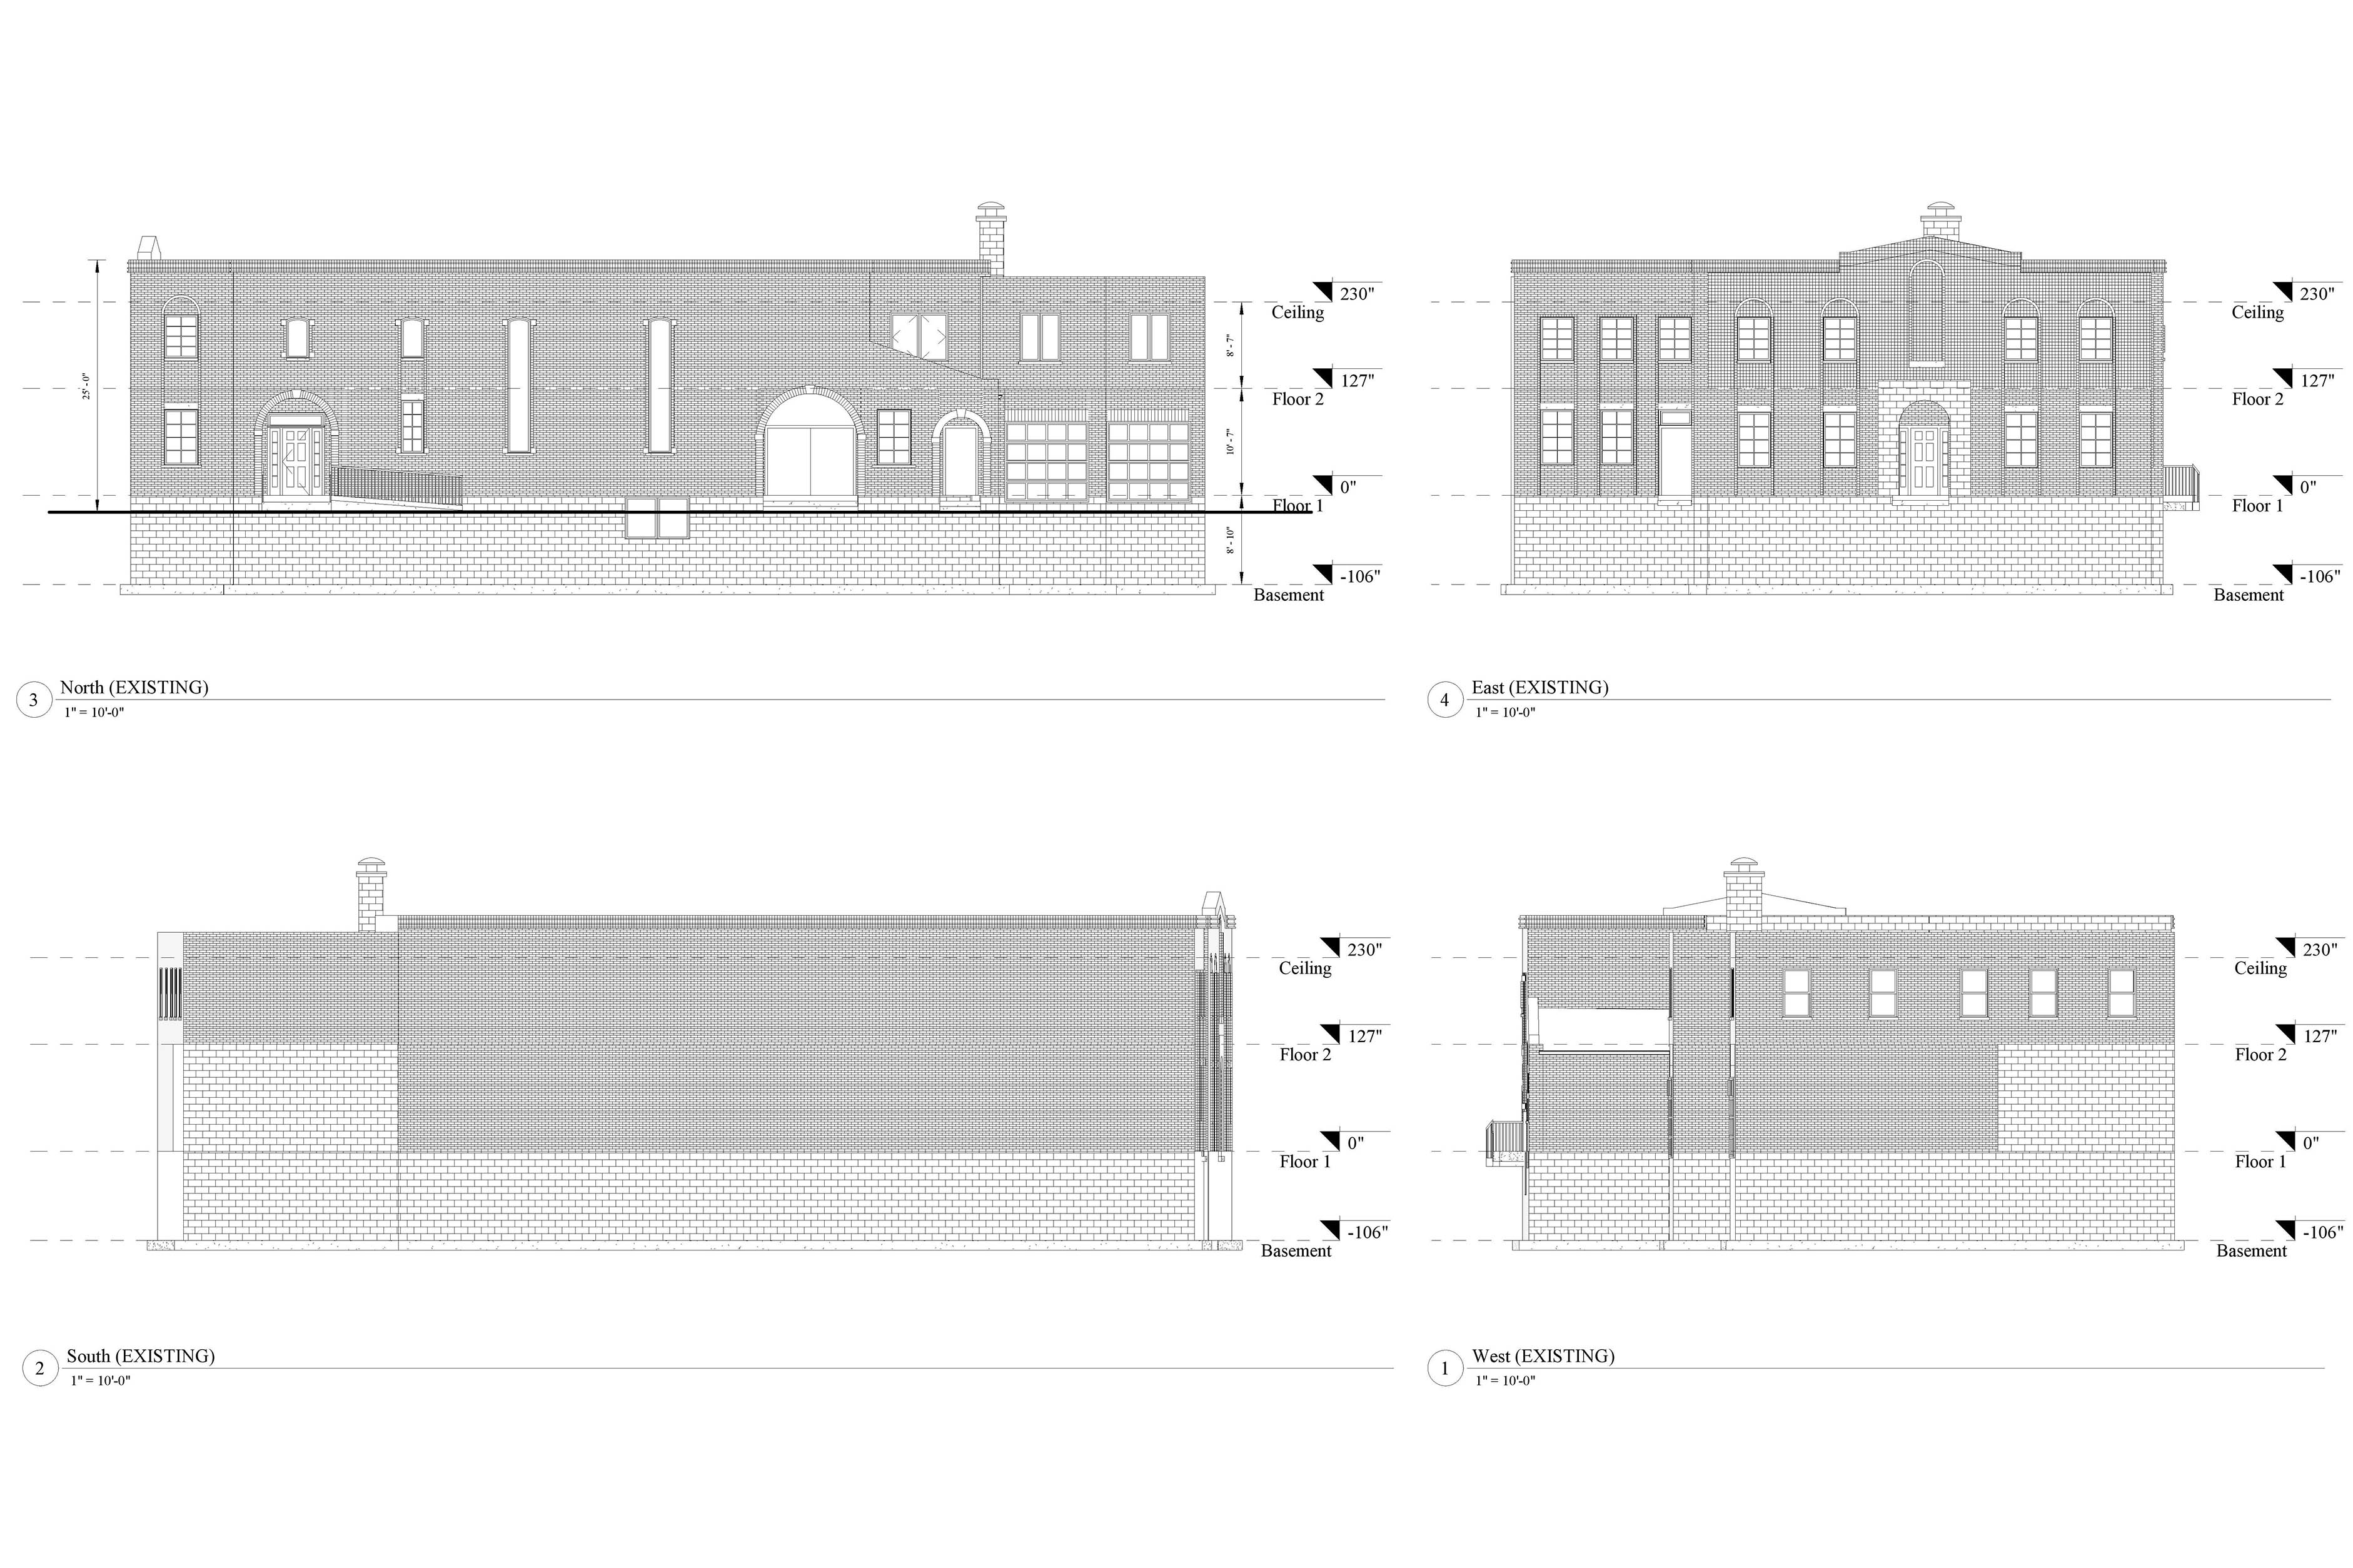 AutoCad drawings of 2D elevation models of the north, south, east, and west viewpoints of an industrial building.